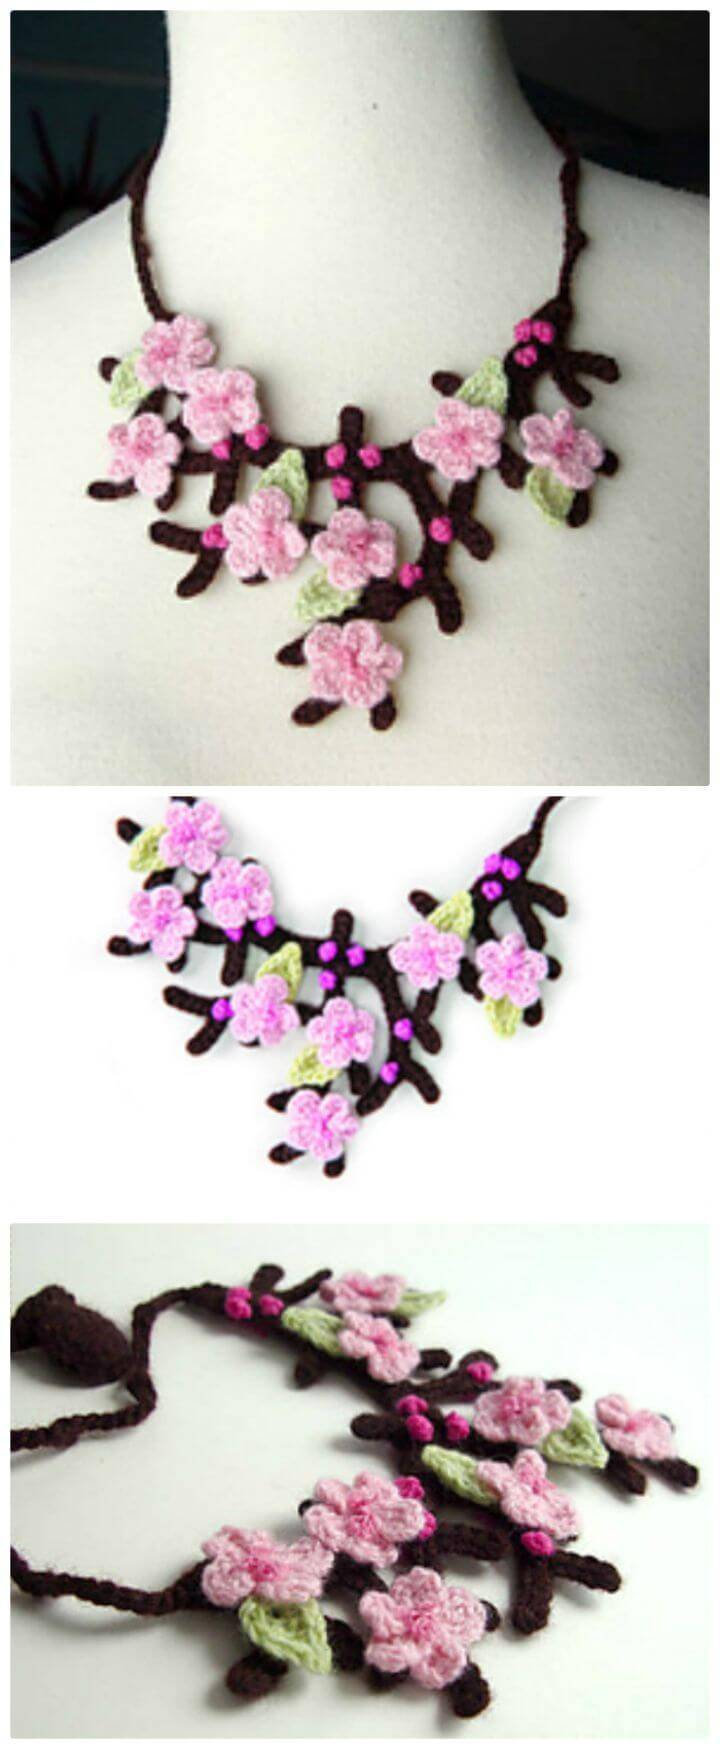 How To Crochet Cherry Blossom Necklace - Free Pattern With Tutorial